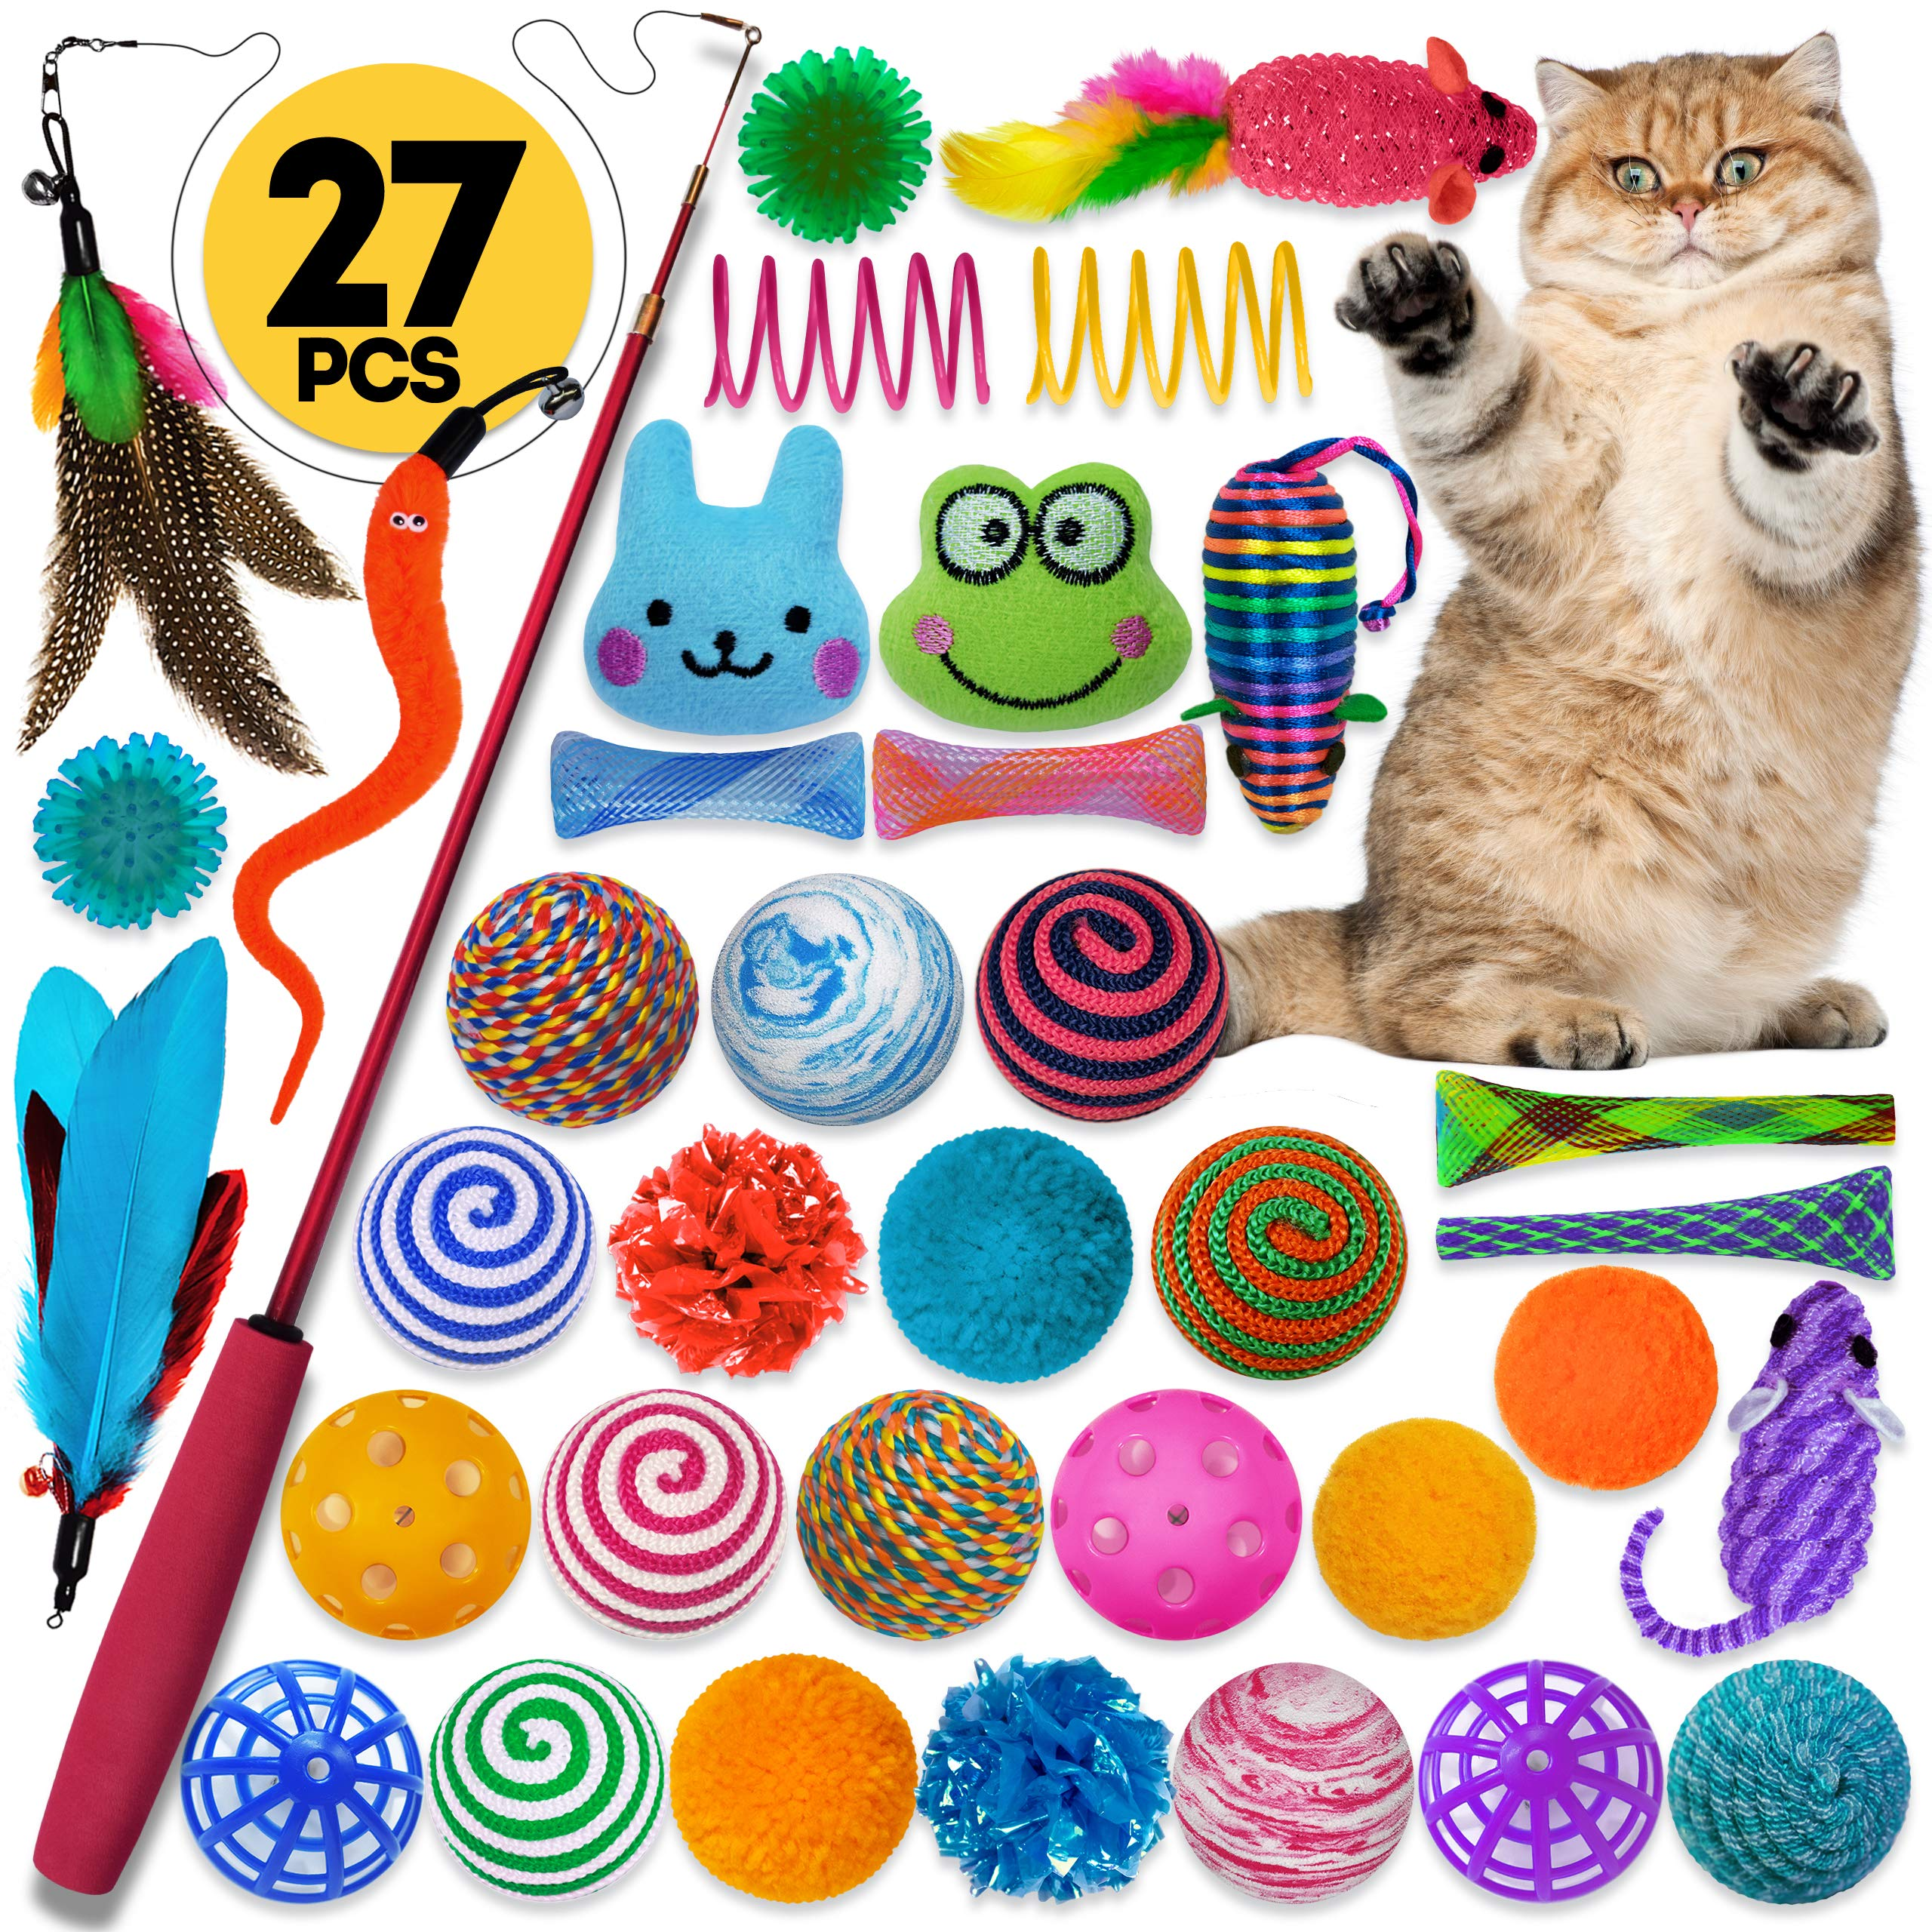 Cowfish Cat Toys Kitten Toys Assortments, 27PCS Variety Toy Set Including Cat Feather Teaser Wand, Feather Toys, Mice…